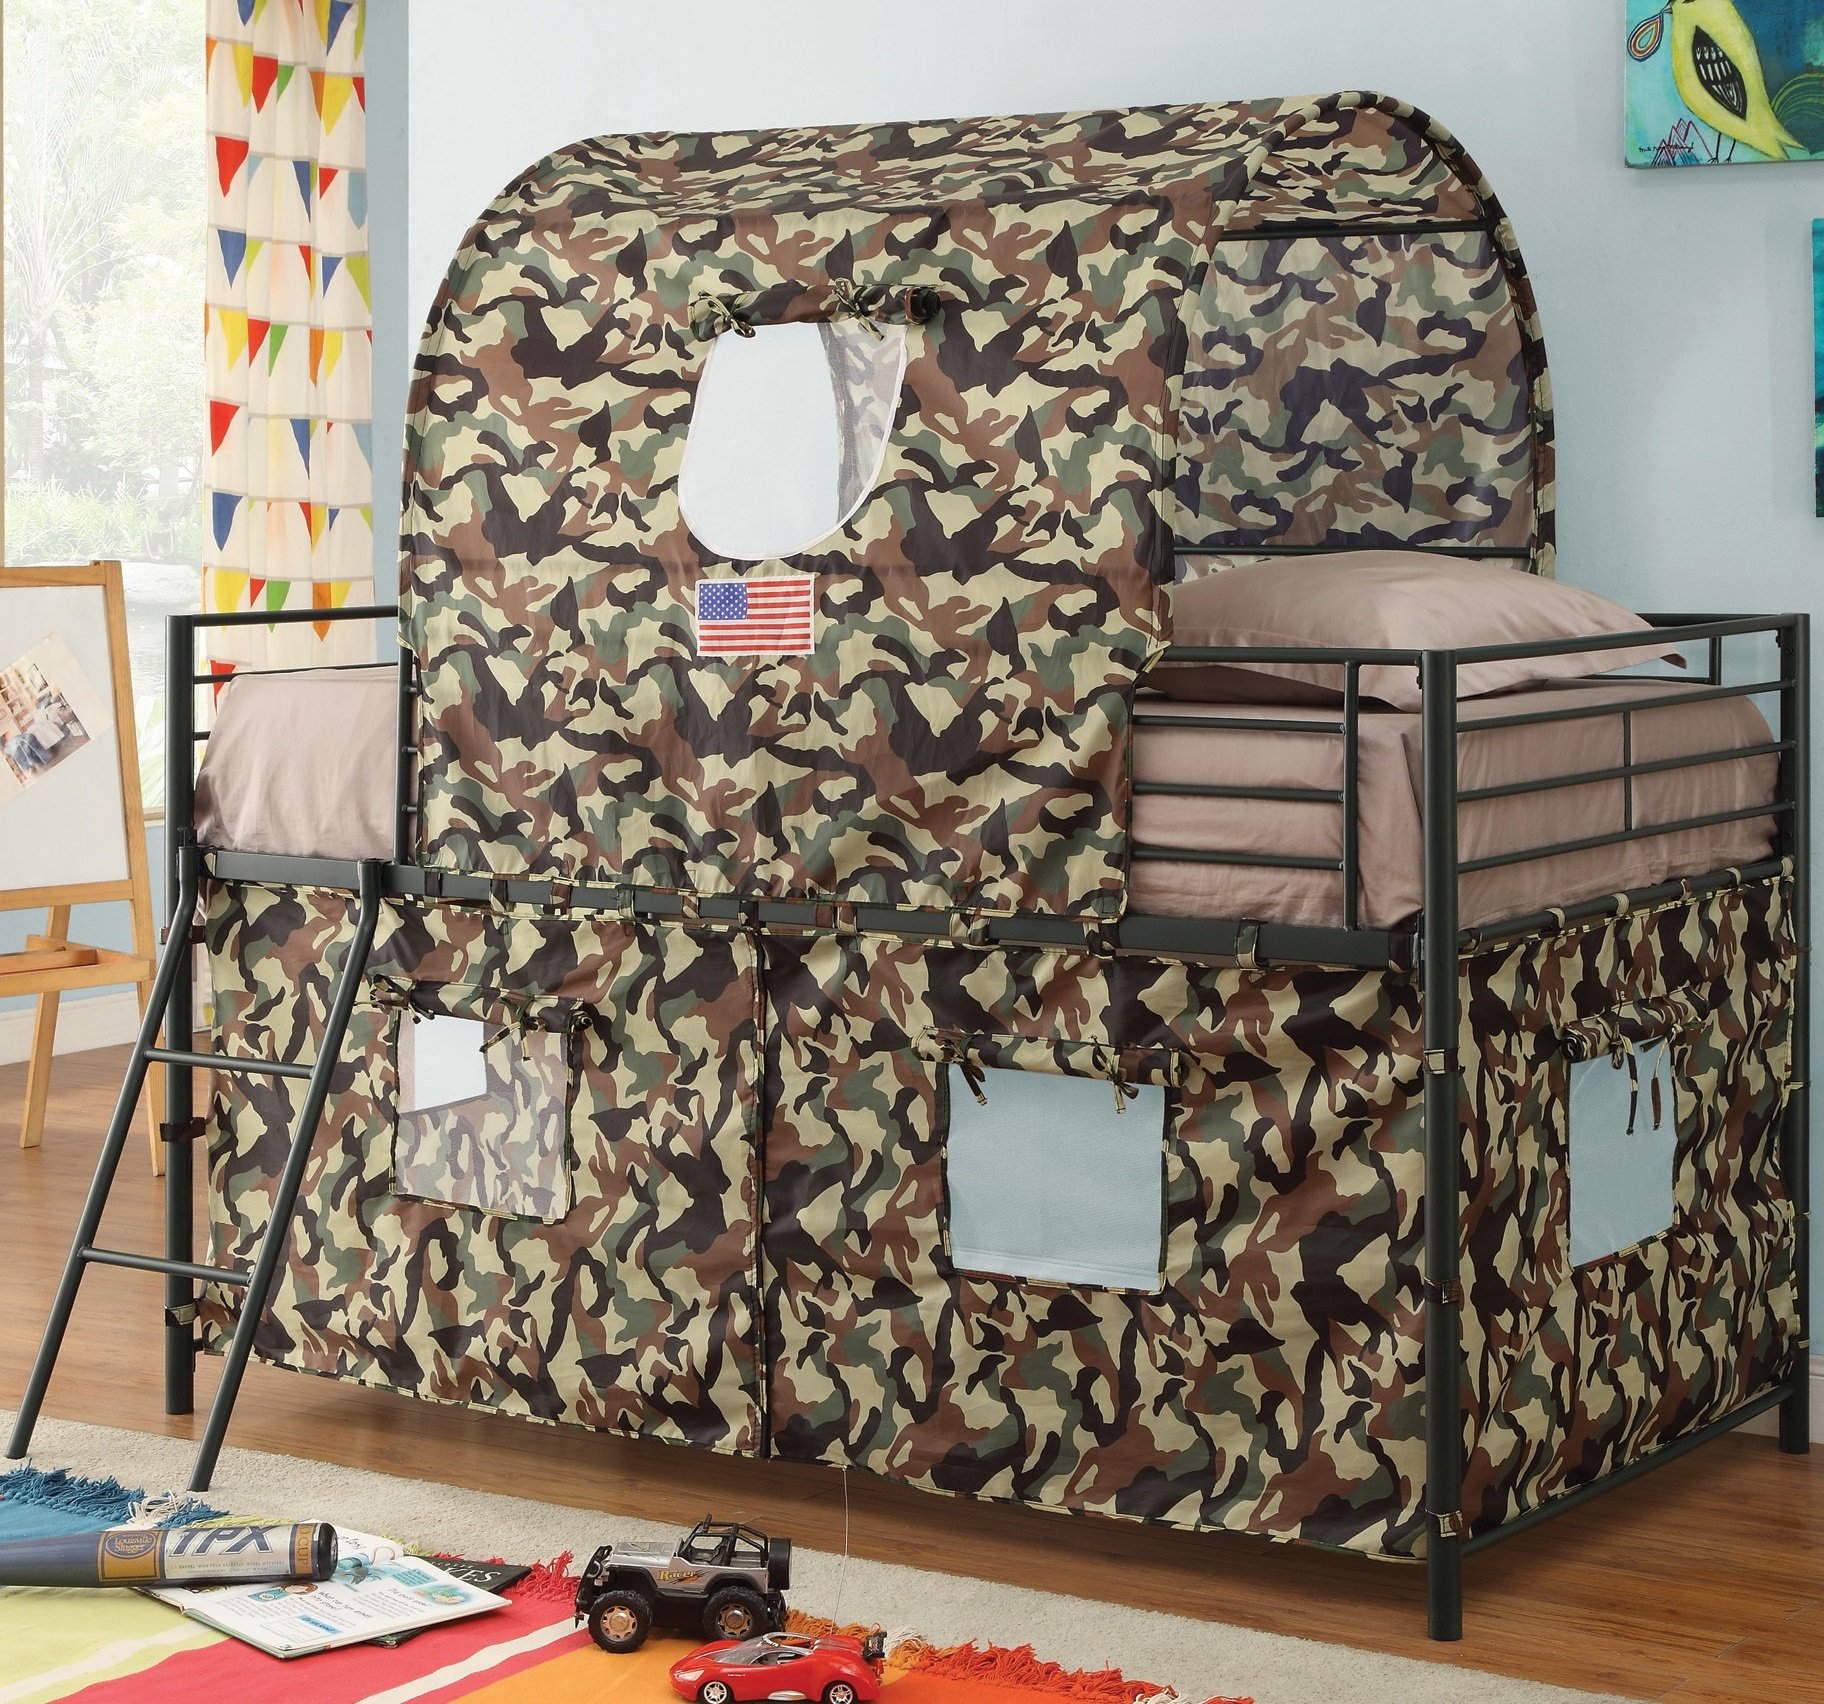 G.I. Twin Loft Bed for Boys - Durable Metal Frame in Glossy Black Finish with Guard Rails and Ladder - Army Camouflage Tent Mesh Covering with Window Flaps for Fun and Games - Extra Space Below Bed